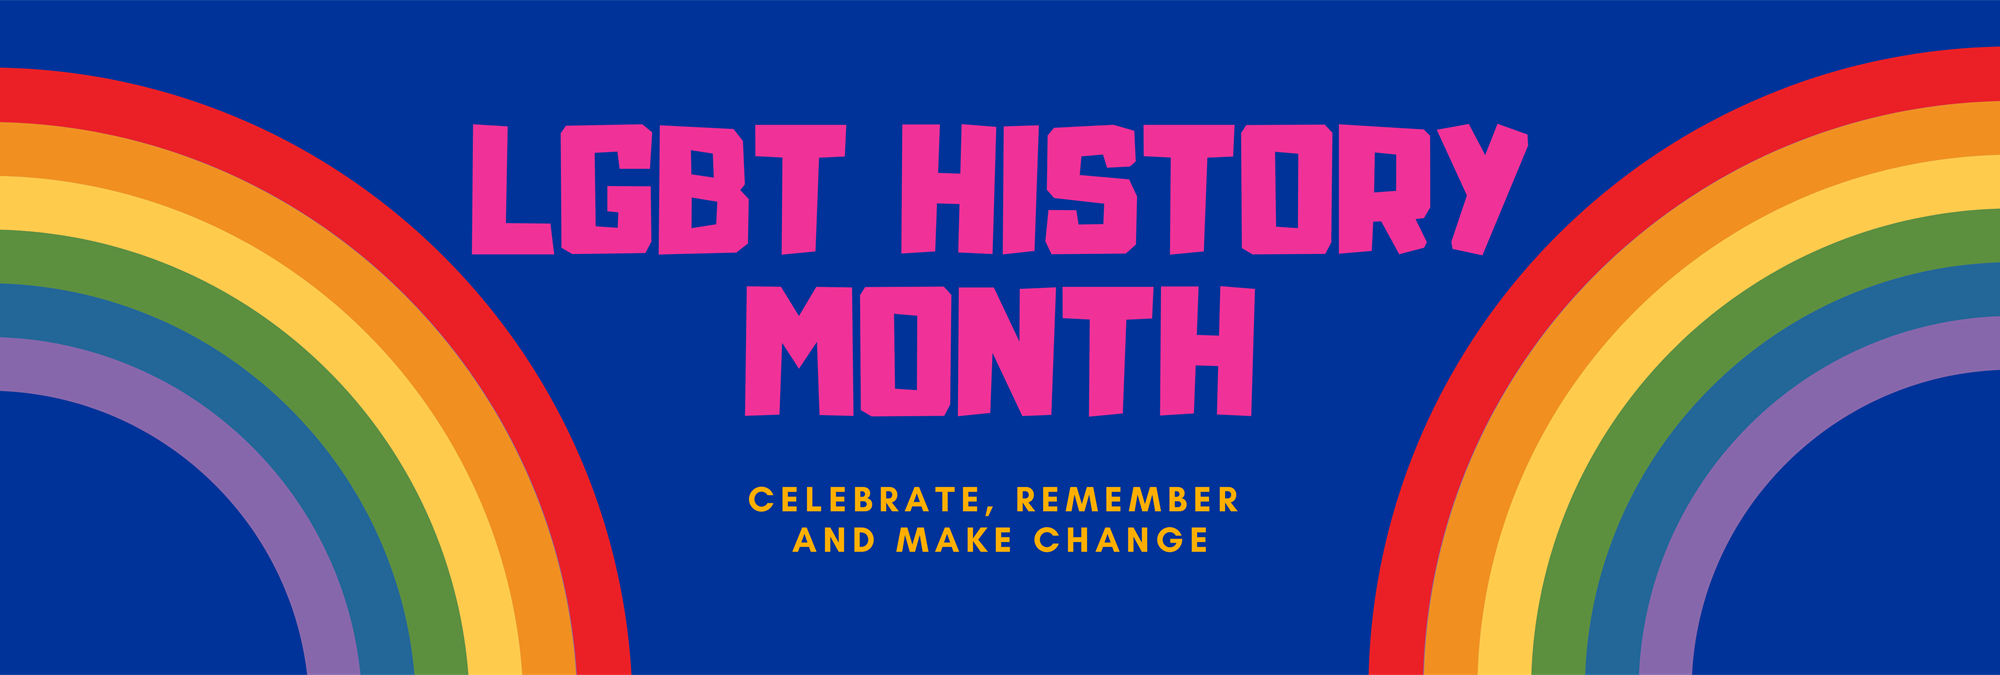 LGBT History Month: Celebrate, remember and make change